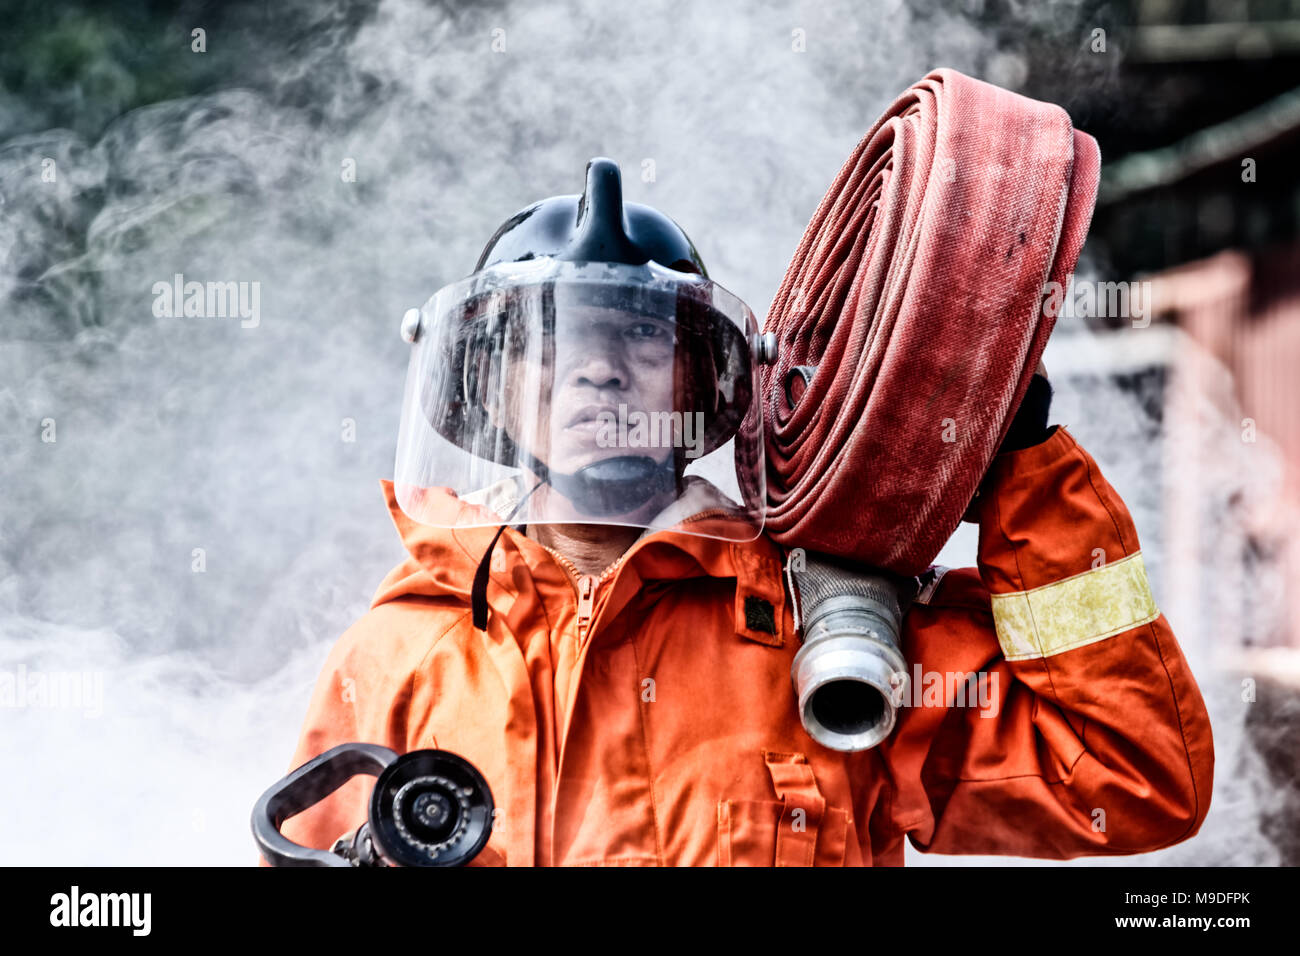 Emergency Fire Rescue training, firefighters in uniform,  carry a water hose run through flame - Stock Image